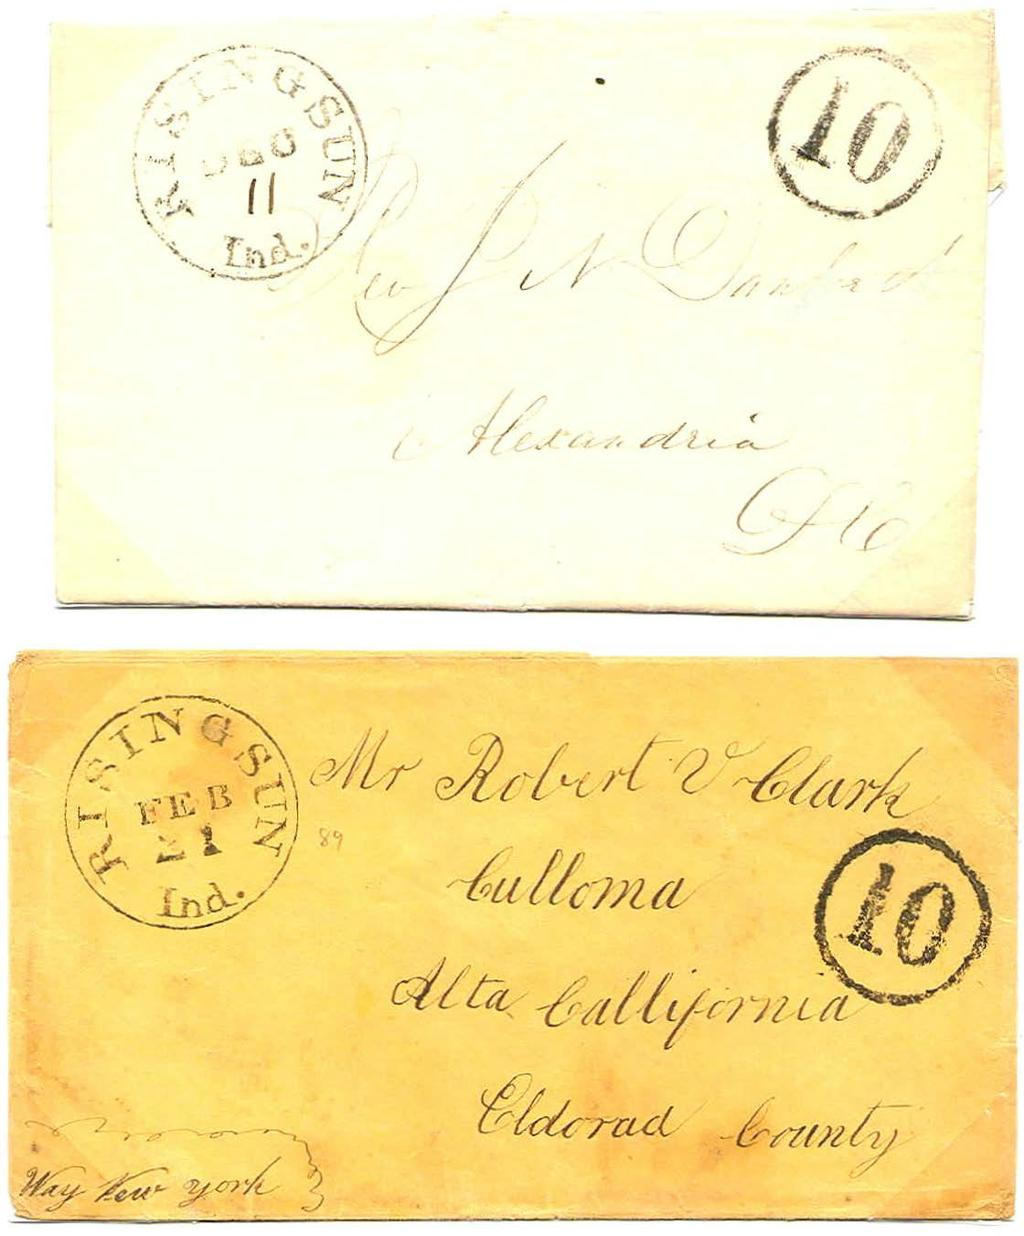 First CDS - Ten Cent Circle / /,,. I ( /, /r, I { December 11, 1849. J Ten cents sent collect, less than 1/2 ounce traveling over 300 miles. February 21, 184x.